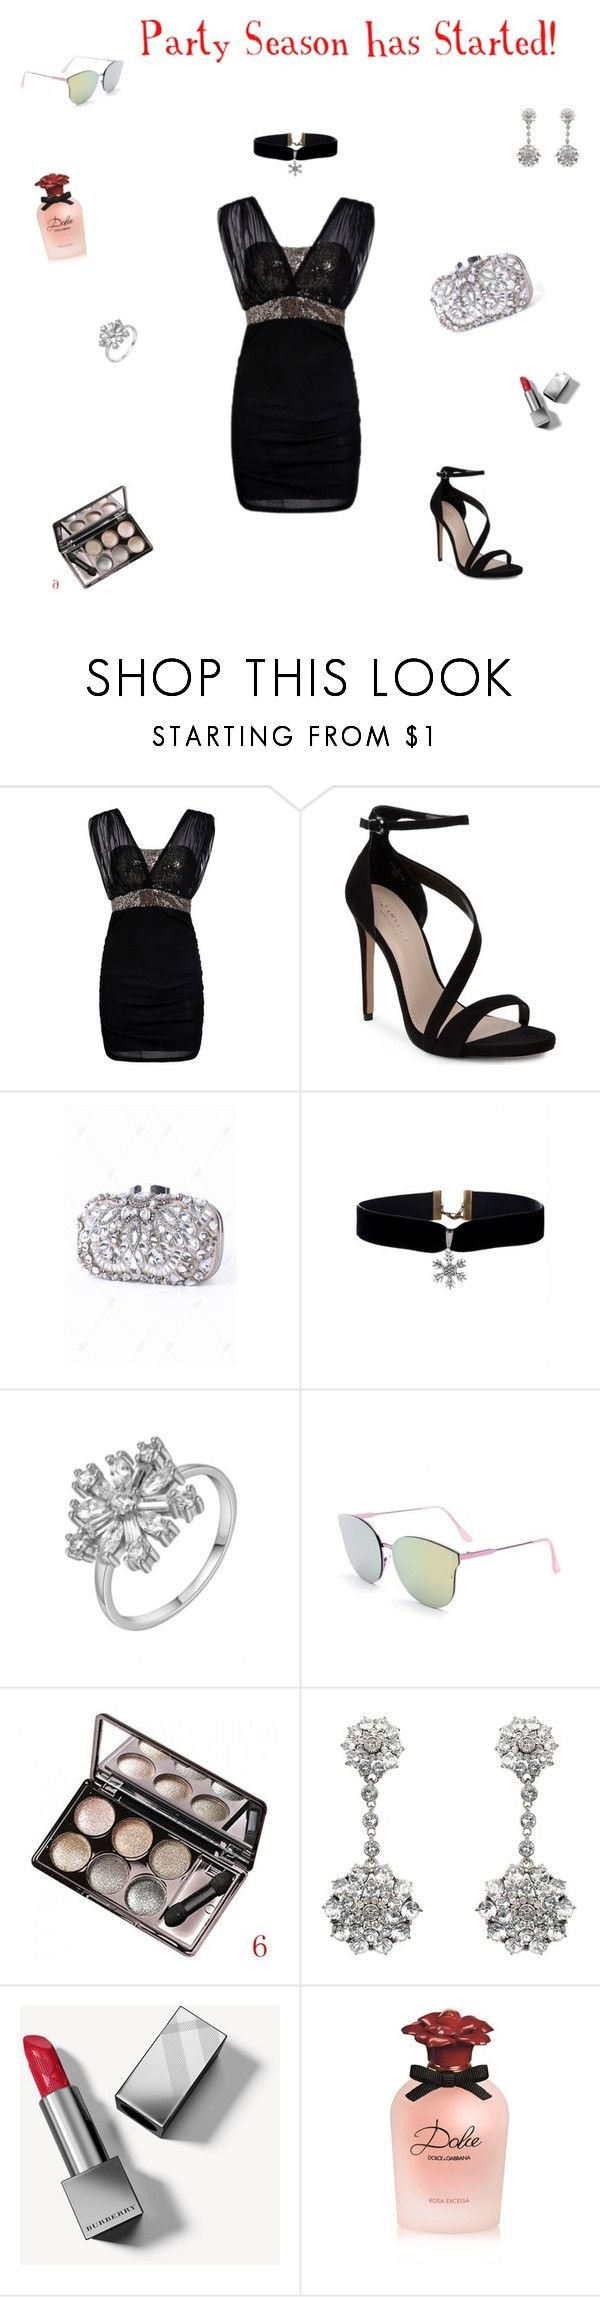 """Icy Winter Fashion"" by rboowybe ❤ liked on Polyvore featuring Carvela, Oscar de la Renta, Burberry and Dolce&Gabbana"